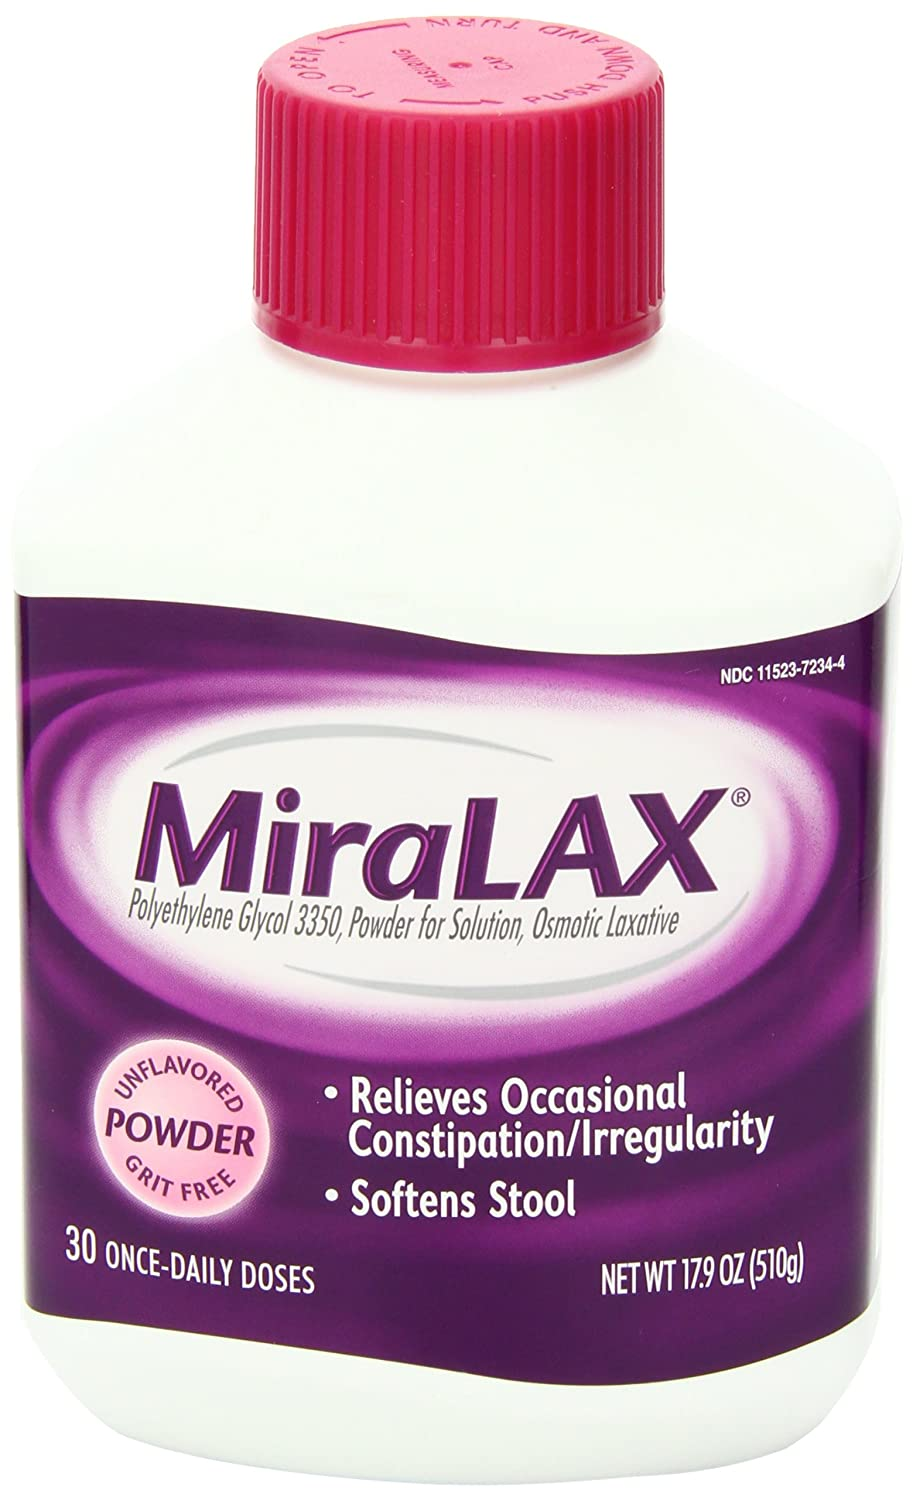 Amazon.com: MiraLAX Powder 17.90 oz: Health & Personal Care